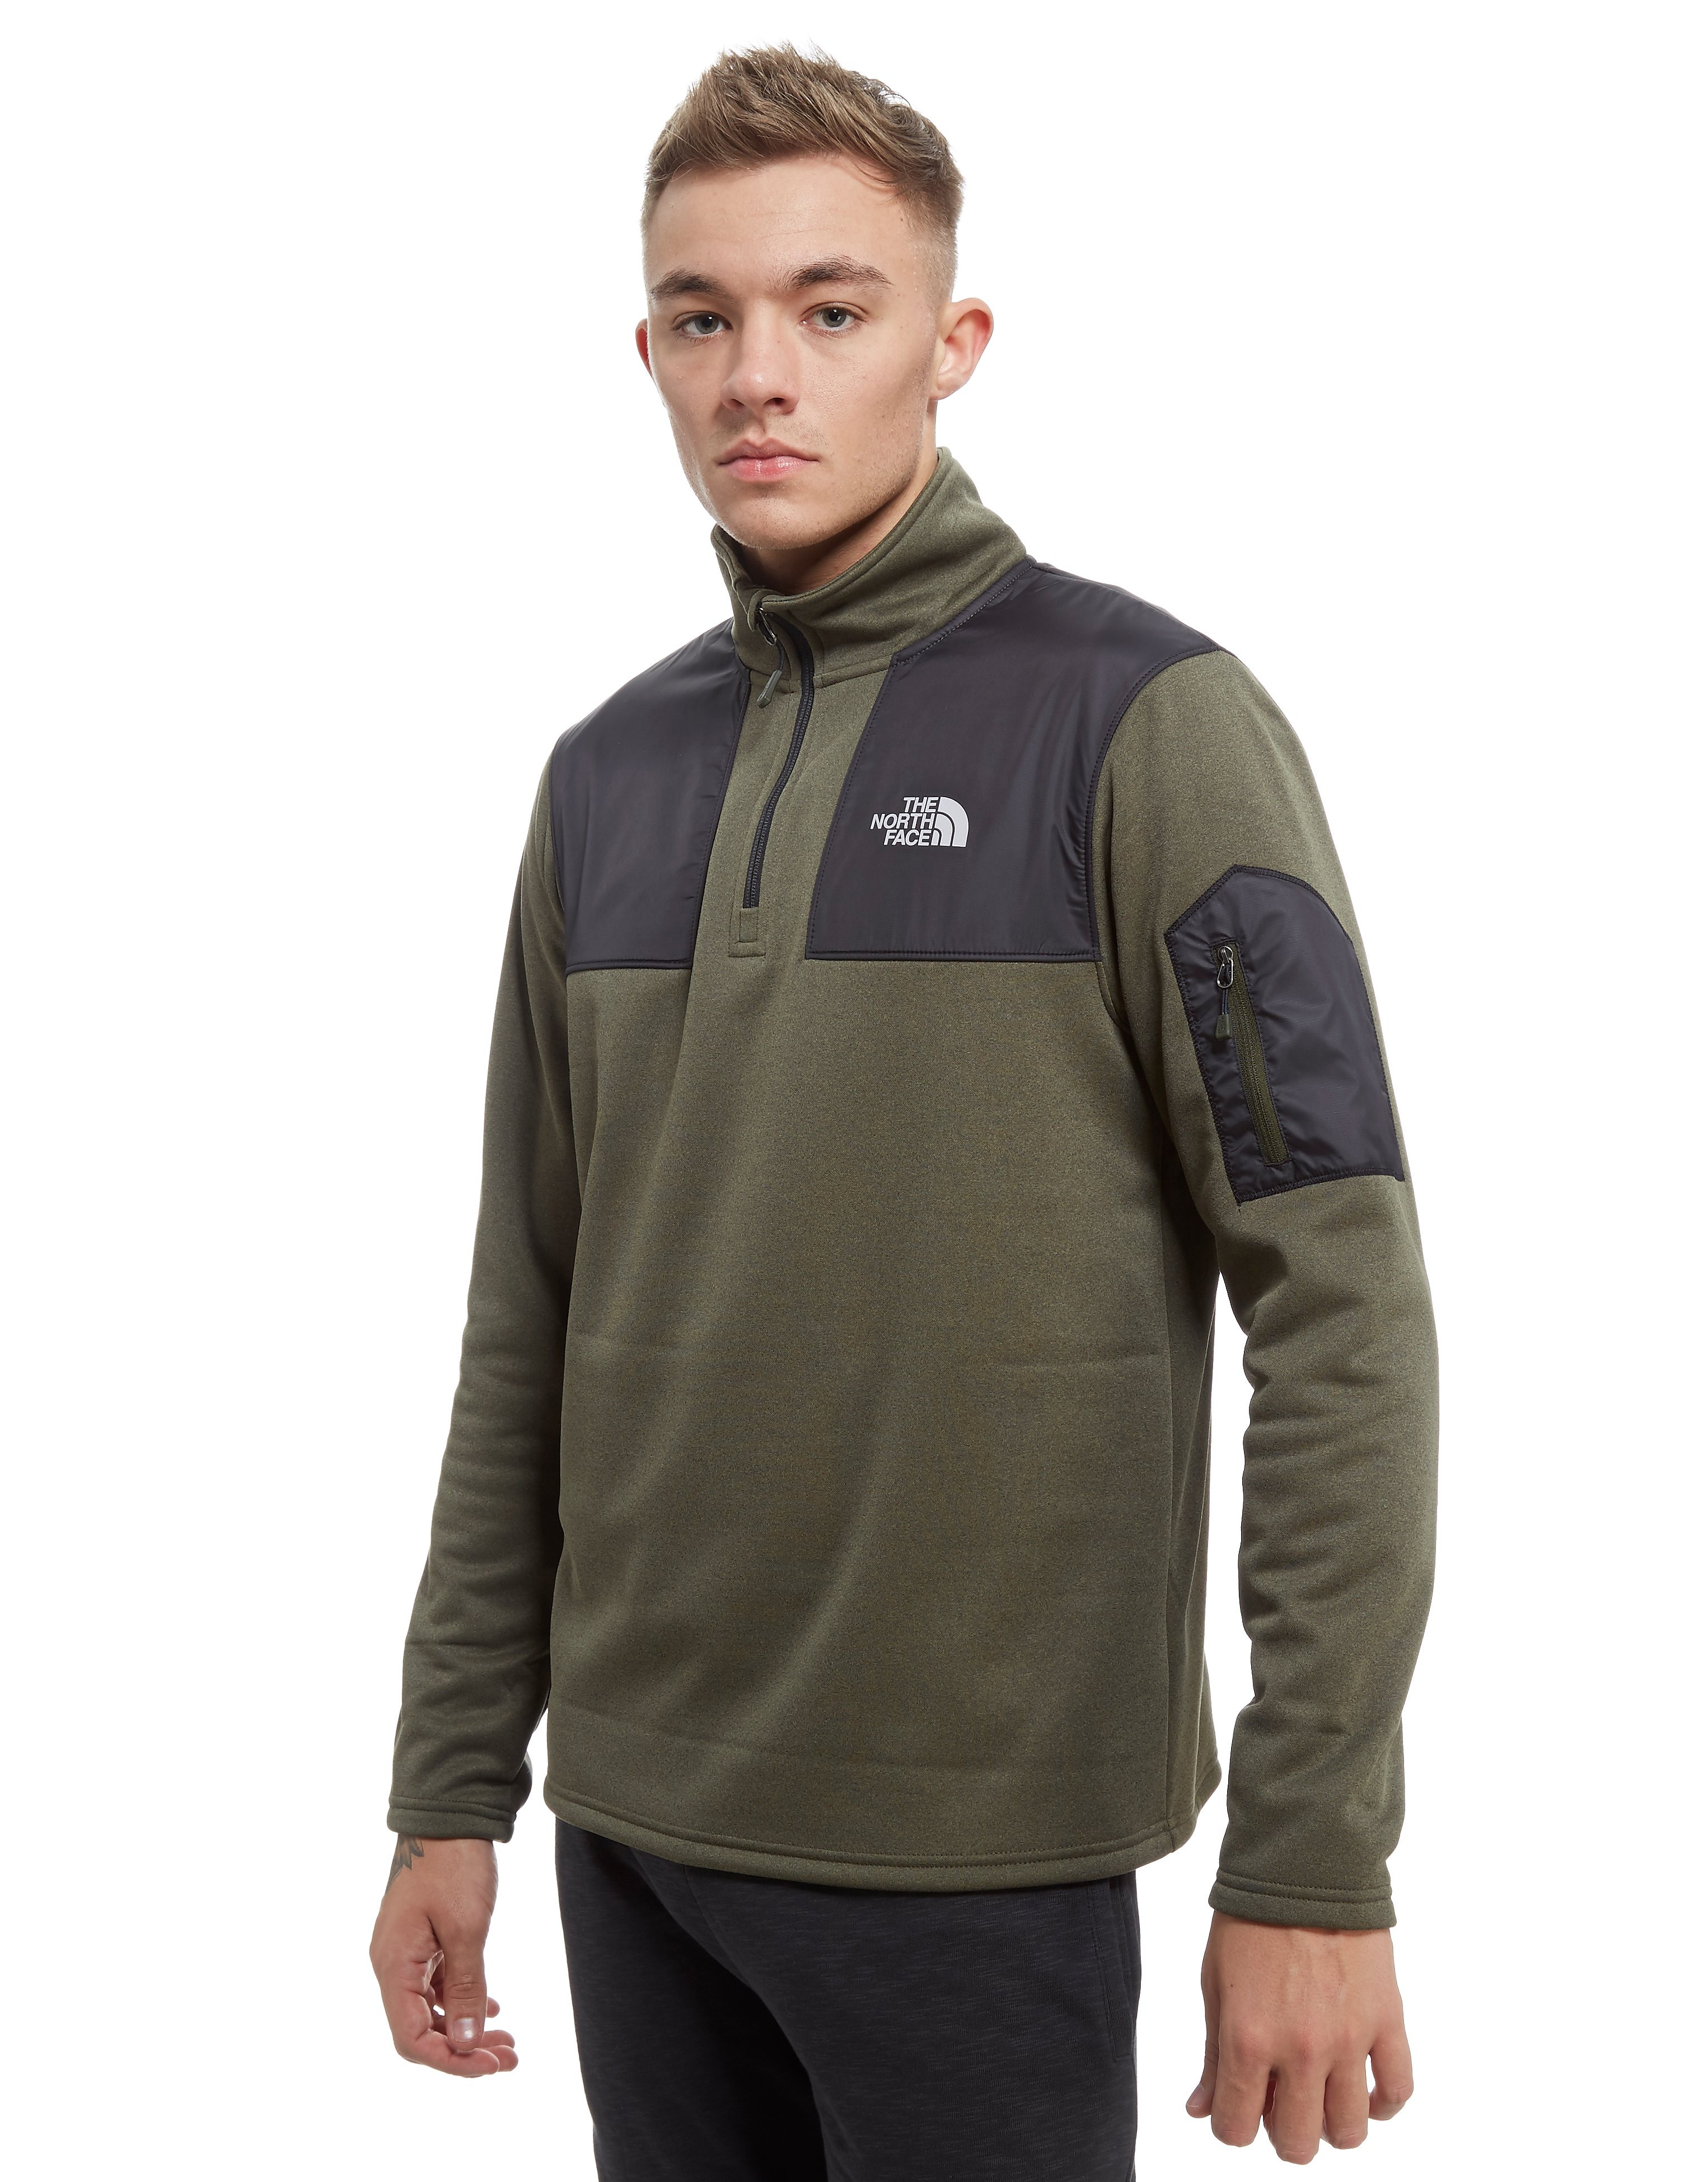 The North Face 1985 Tech Delta 1/4 Zip Hoodie